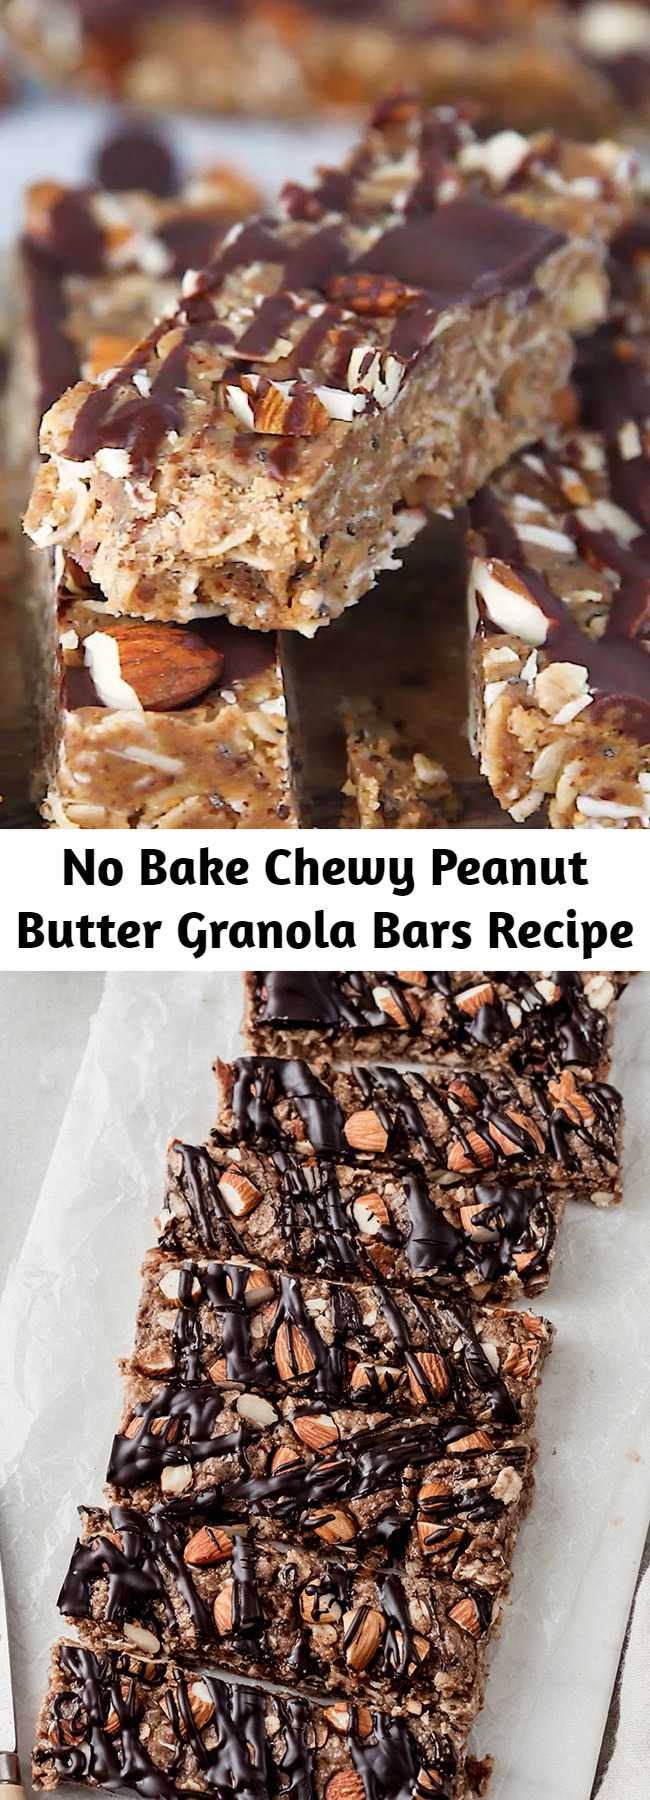 No Bake Chewy Peanut Butter Granola Bars Recipe - No bake peanut butter granola bars packed with wholesome ingredients like chia seeds, flax, almonds, and dark chocolate. These chewy granola bars will be your new favorite grab-and-go snack! #granolabars #nobake #snackrecipe #snackideas #healthysnack #peanutbutter